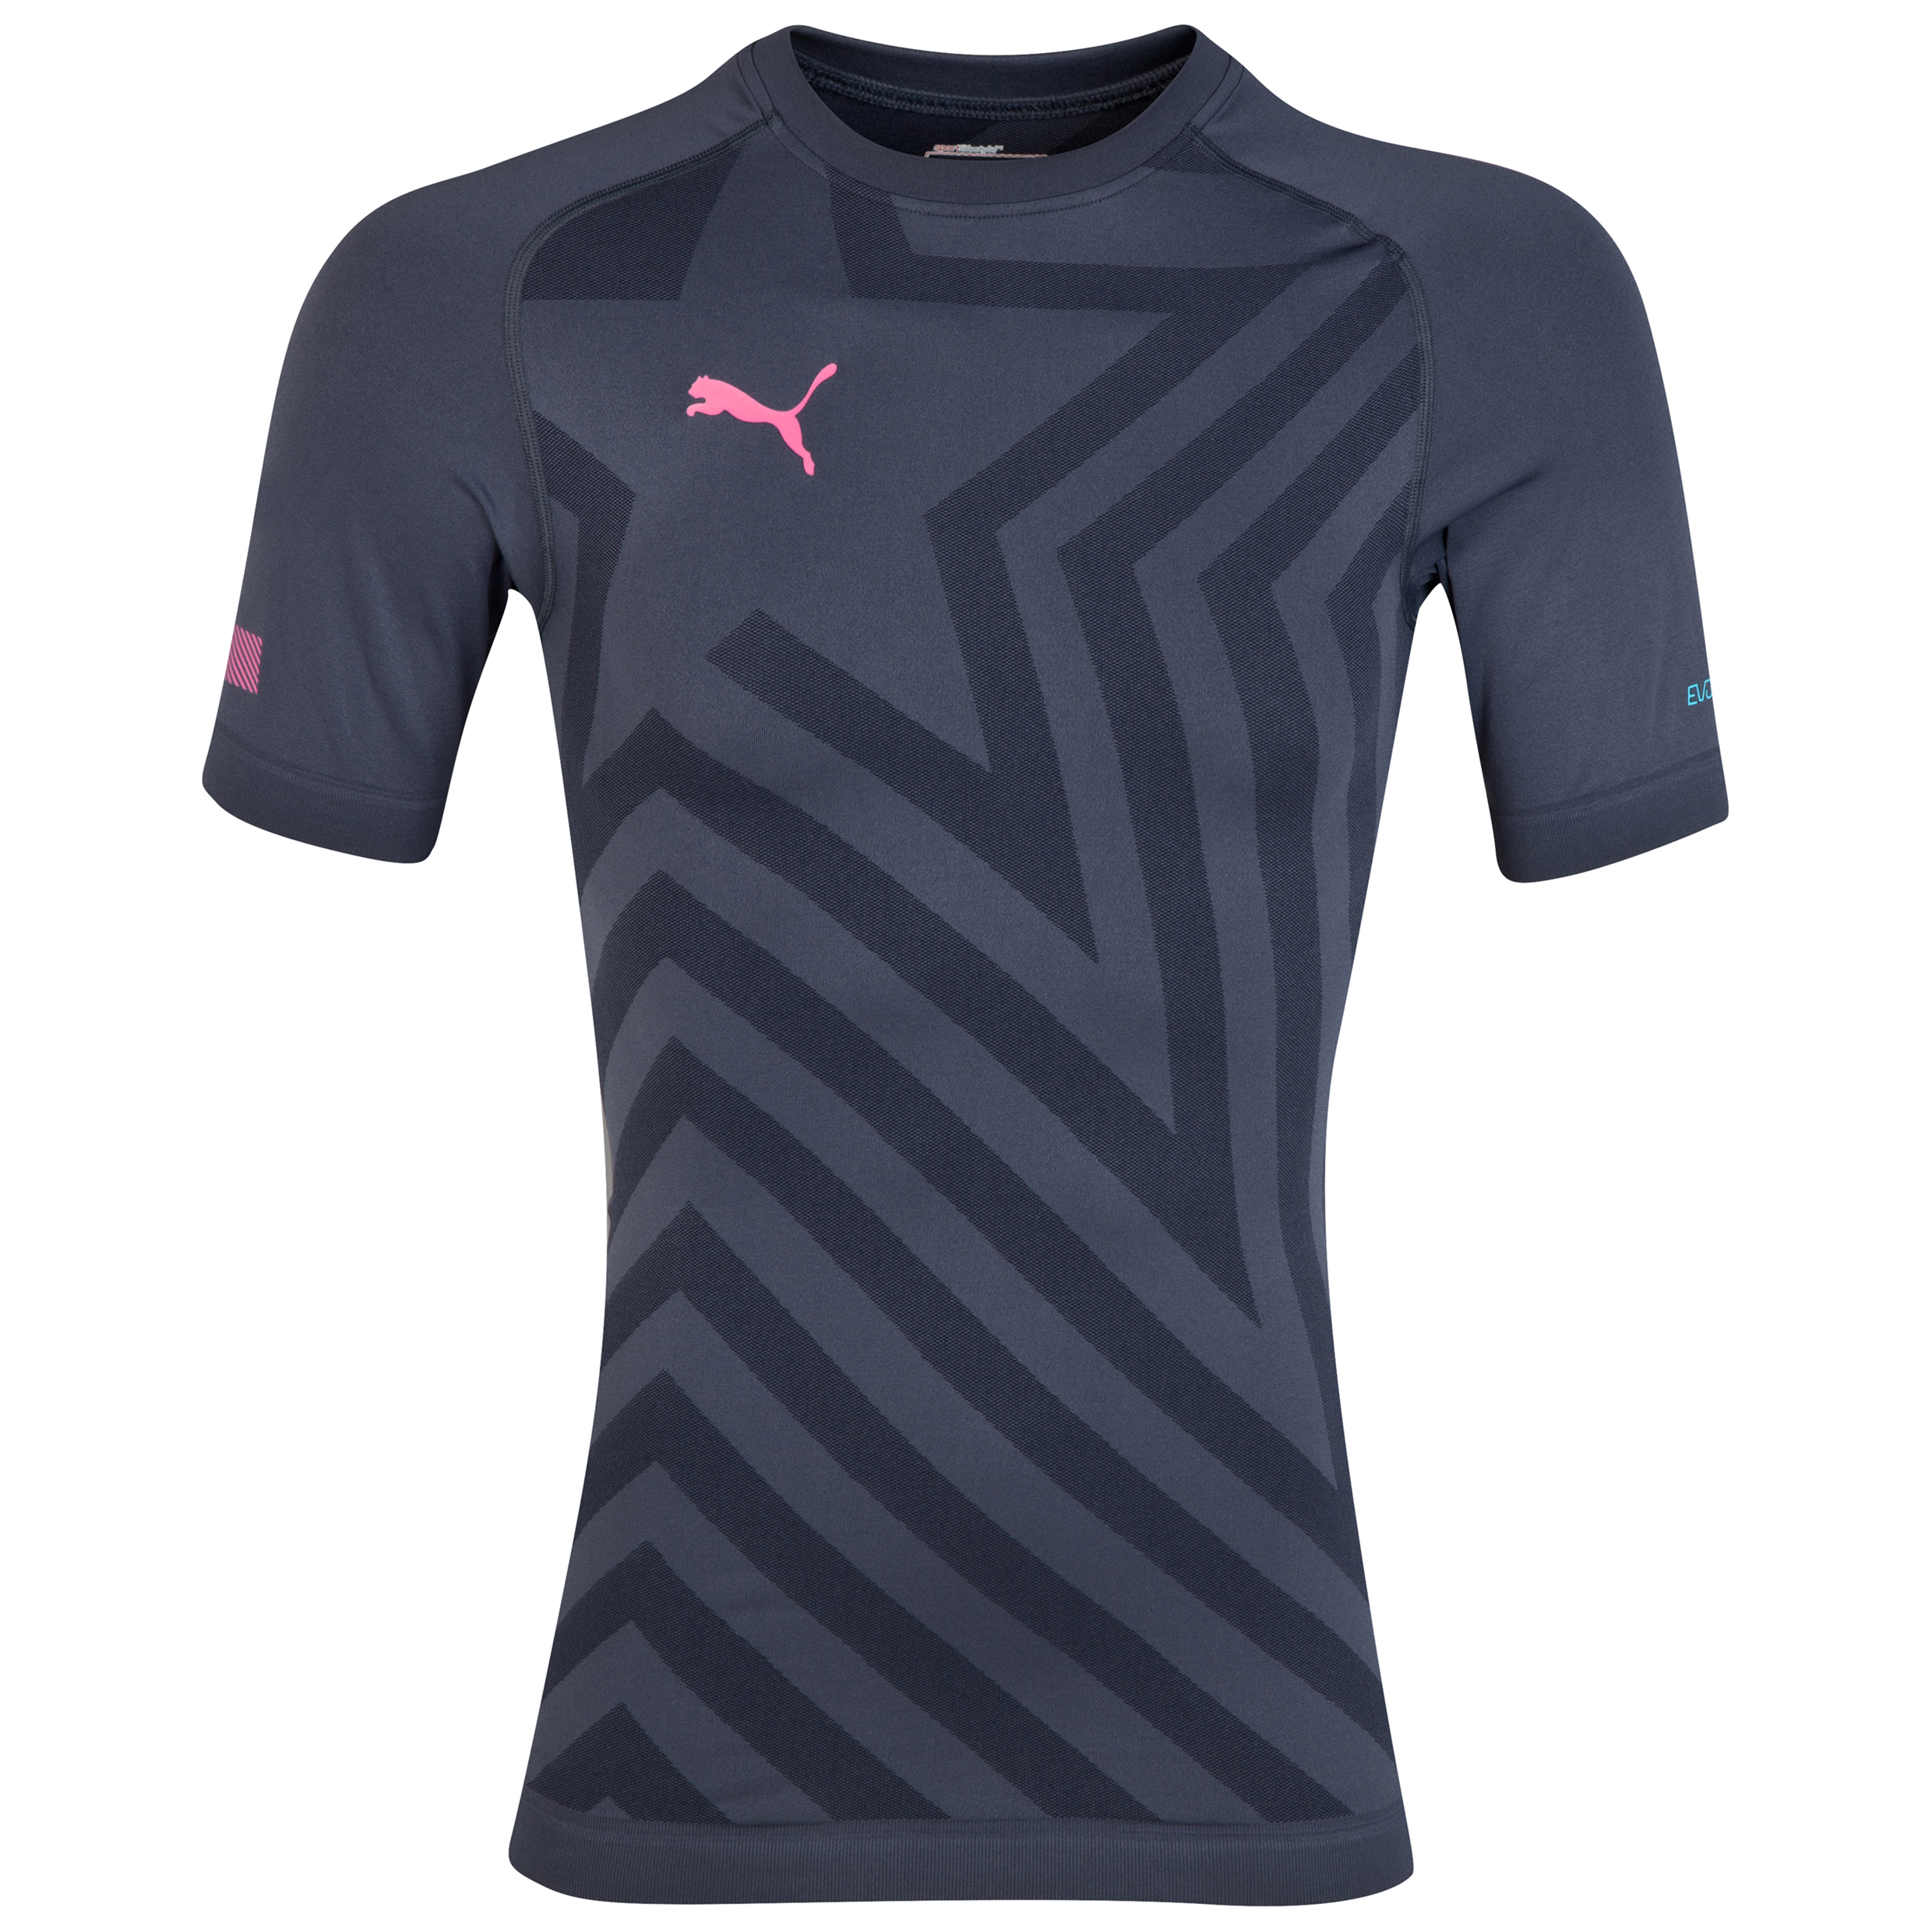 Puma evoPower TRICKS Technical T-Shirt